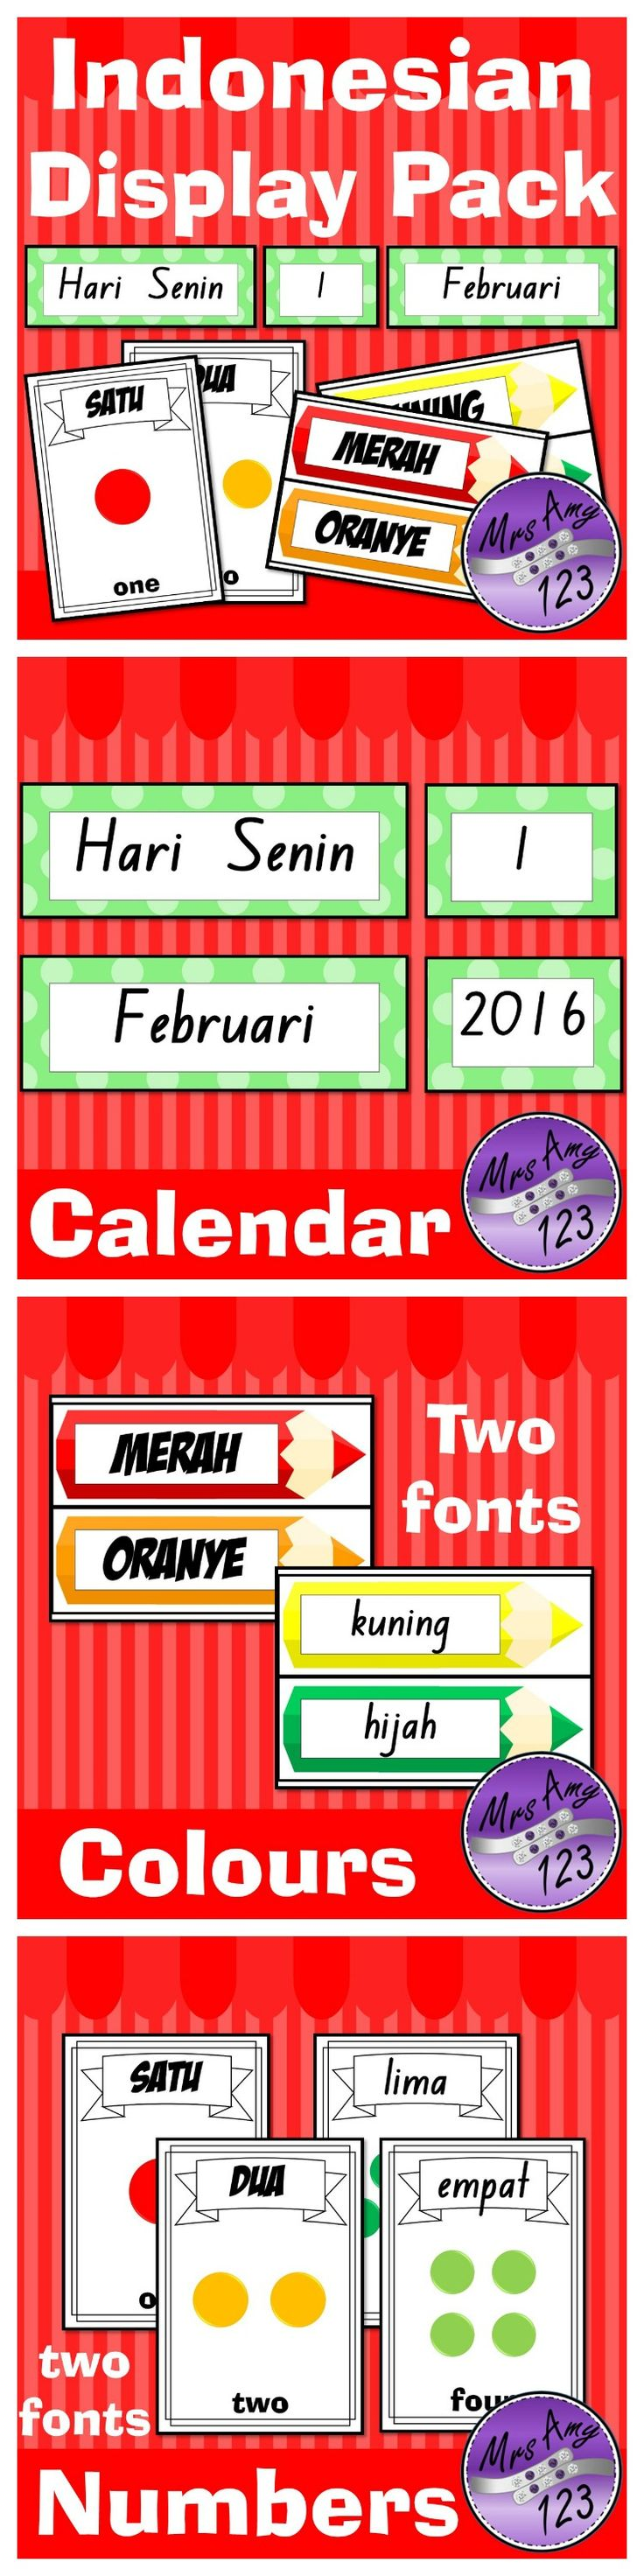 Indonesian Display Pack- Colours, Numbers and Calendar